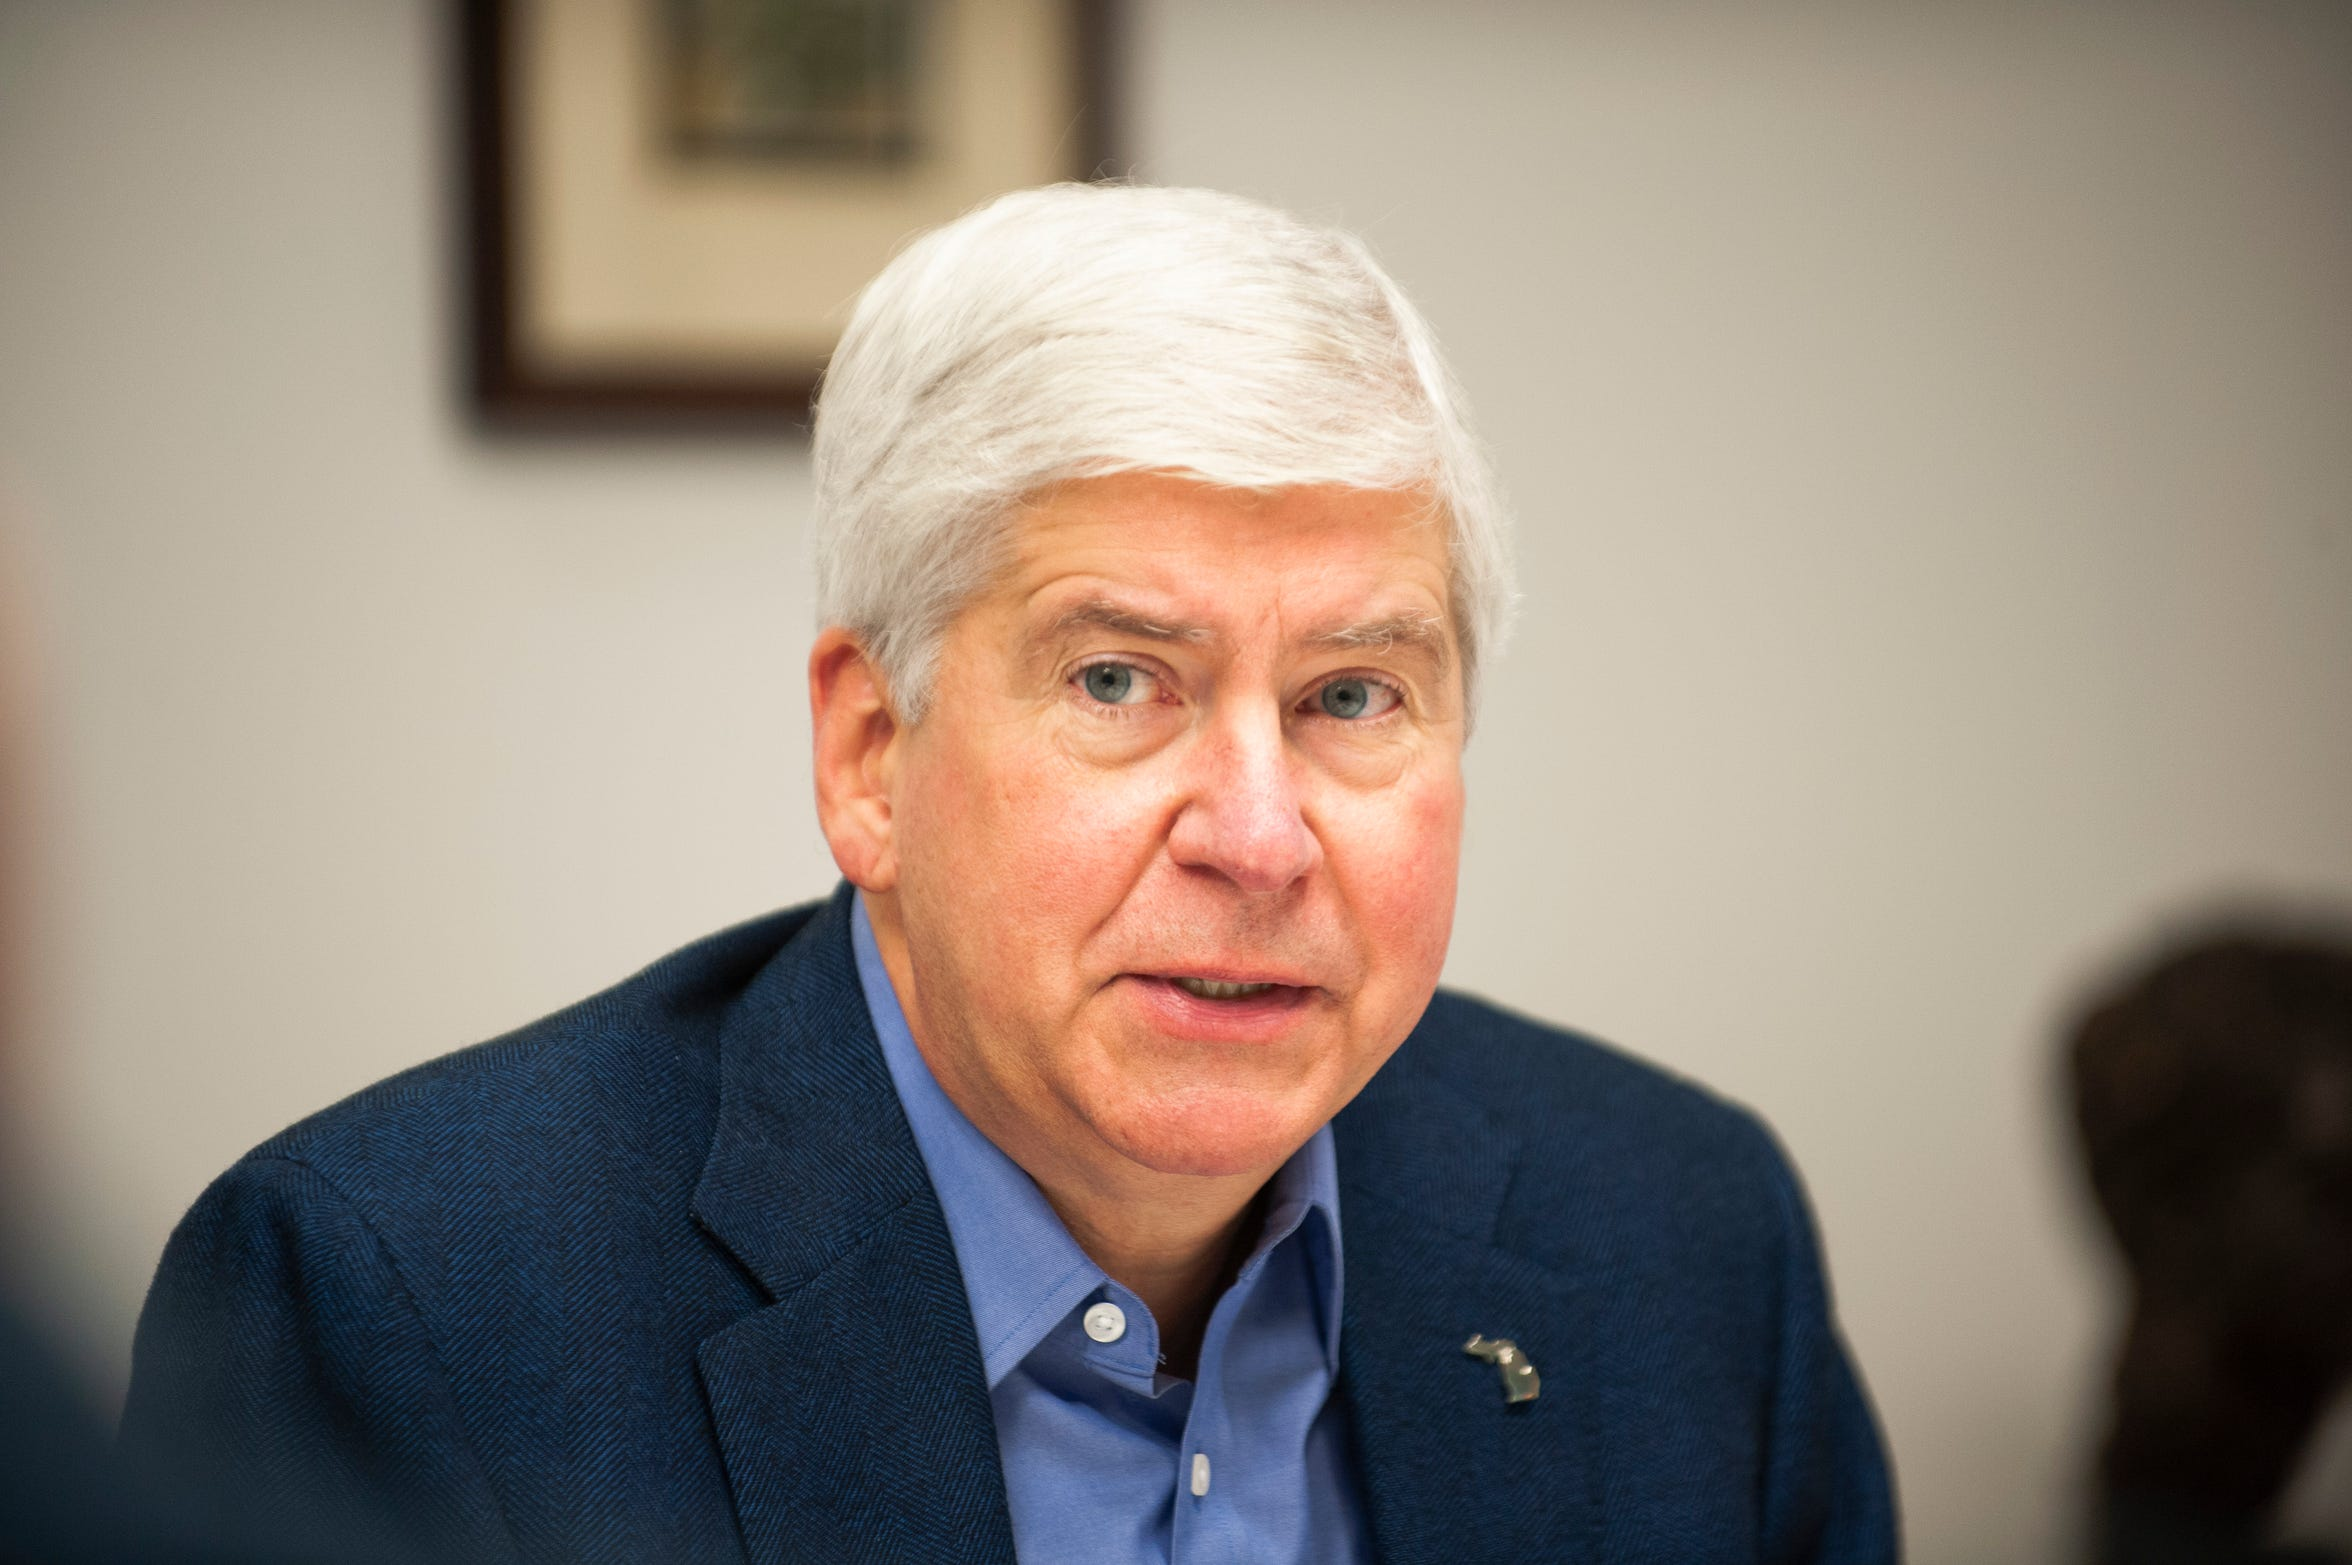 """Gov. Rick Snyder decided to """"pass on the opportunity"""" to explain his clemency decisions, his spokeswoman told The Detroit News."""